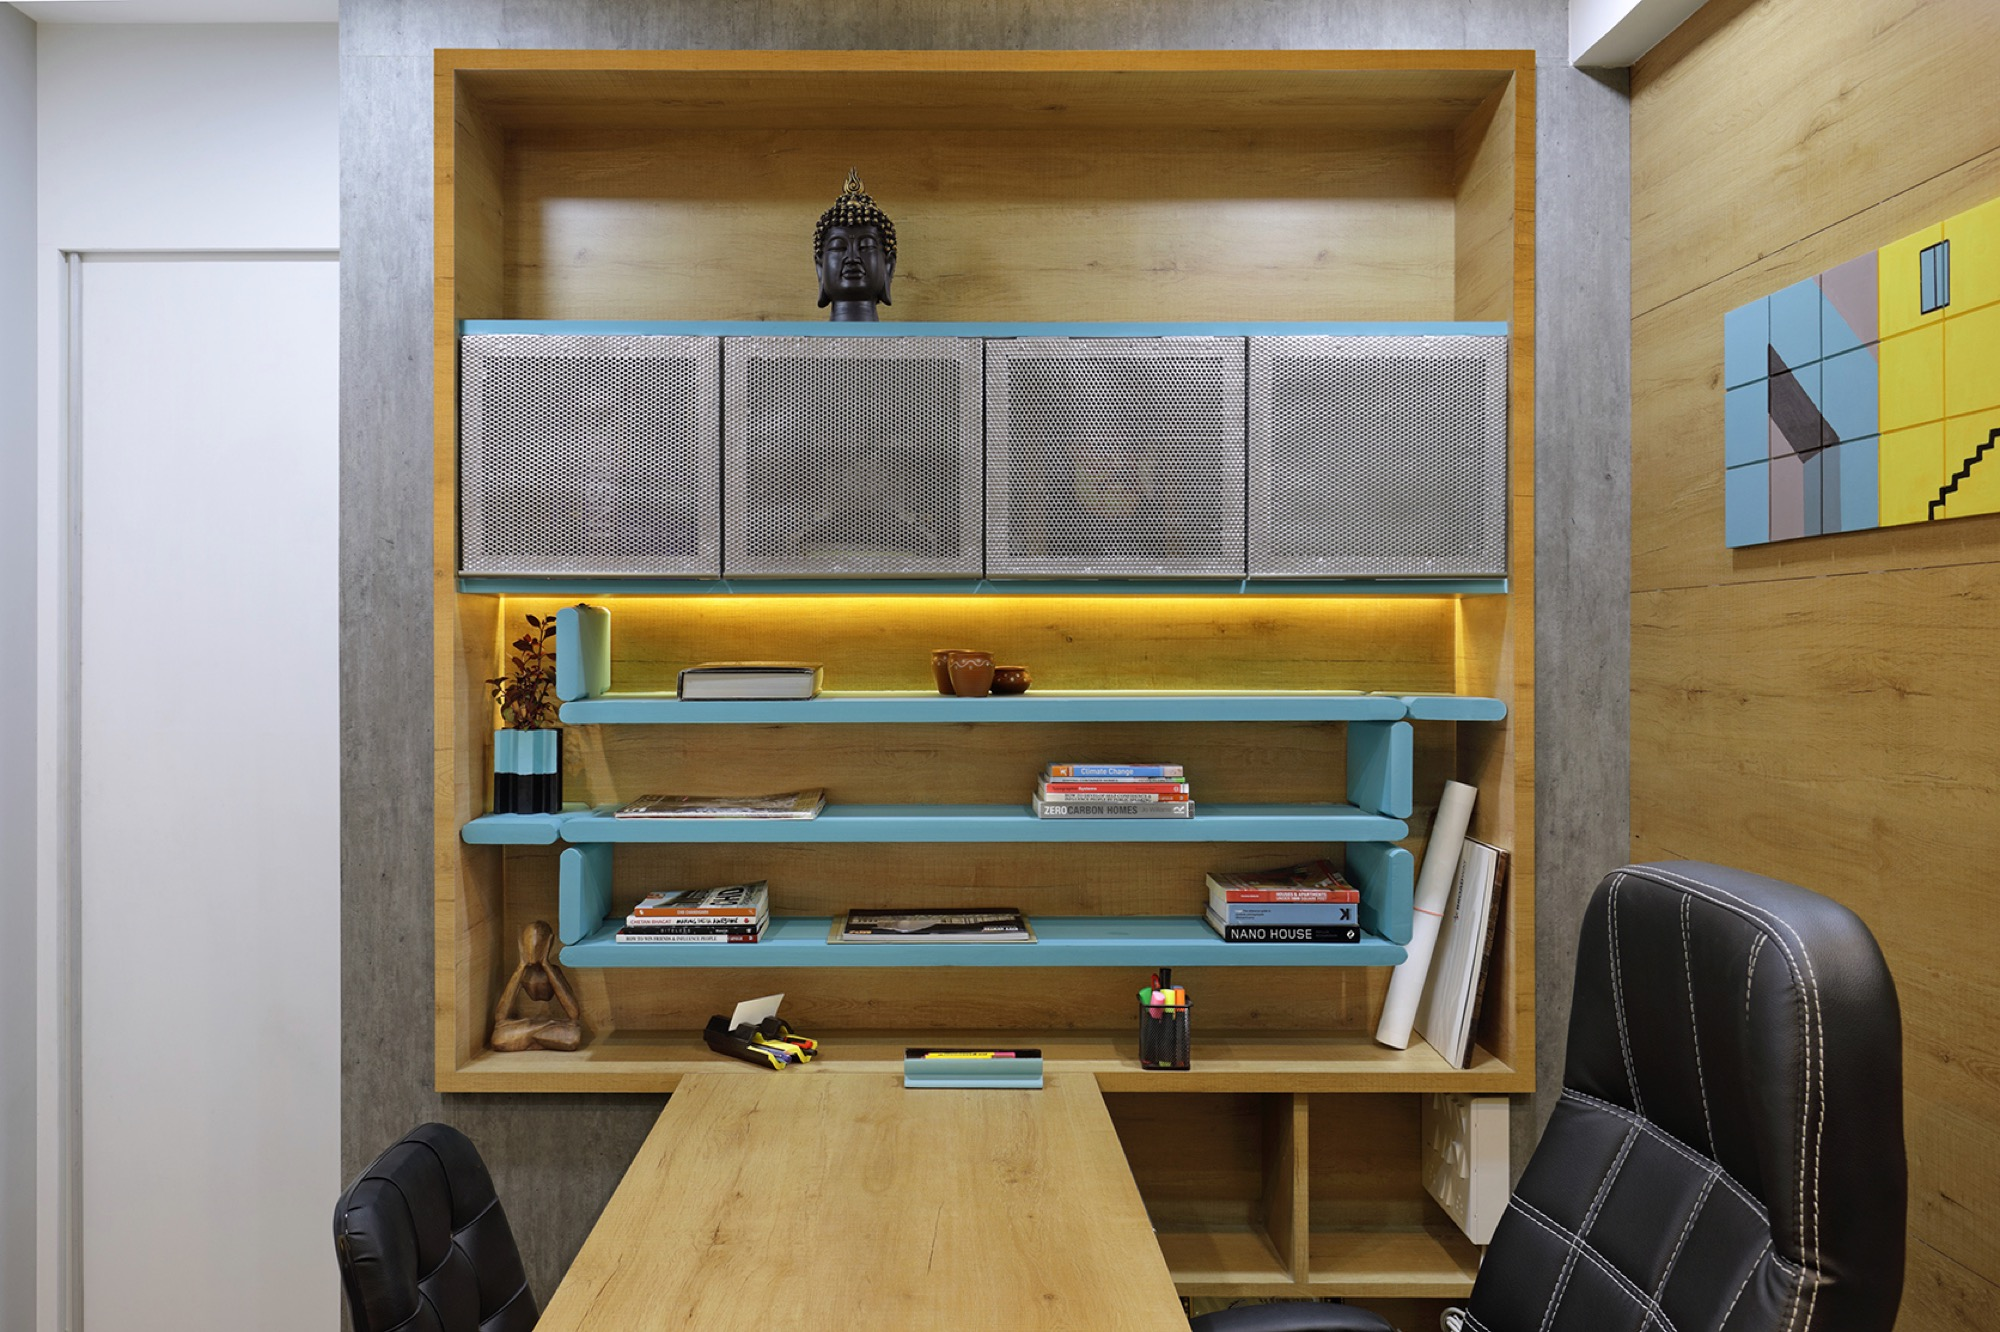 Adaptable furniture that defines the office space, designed by Manoj patel Design Studio 9